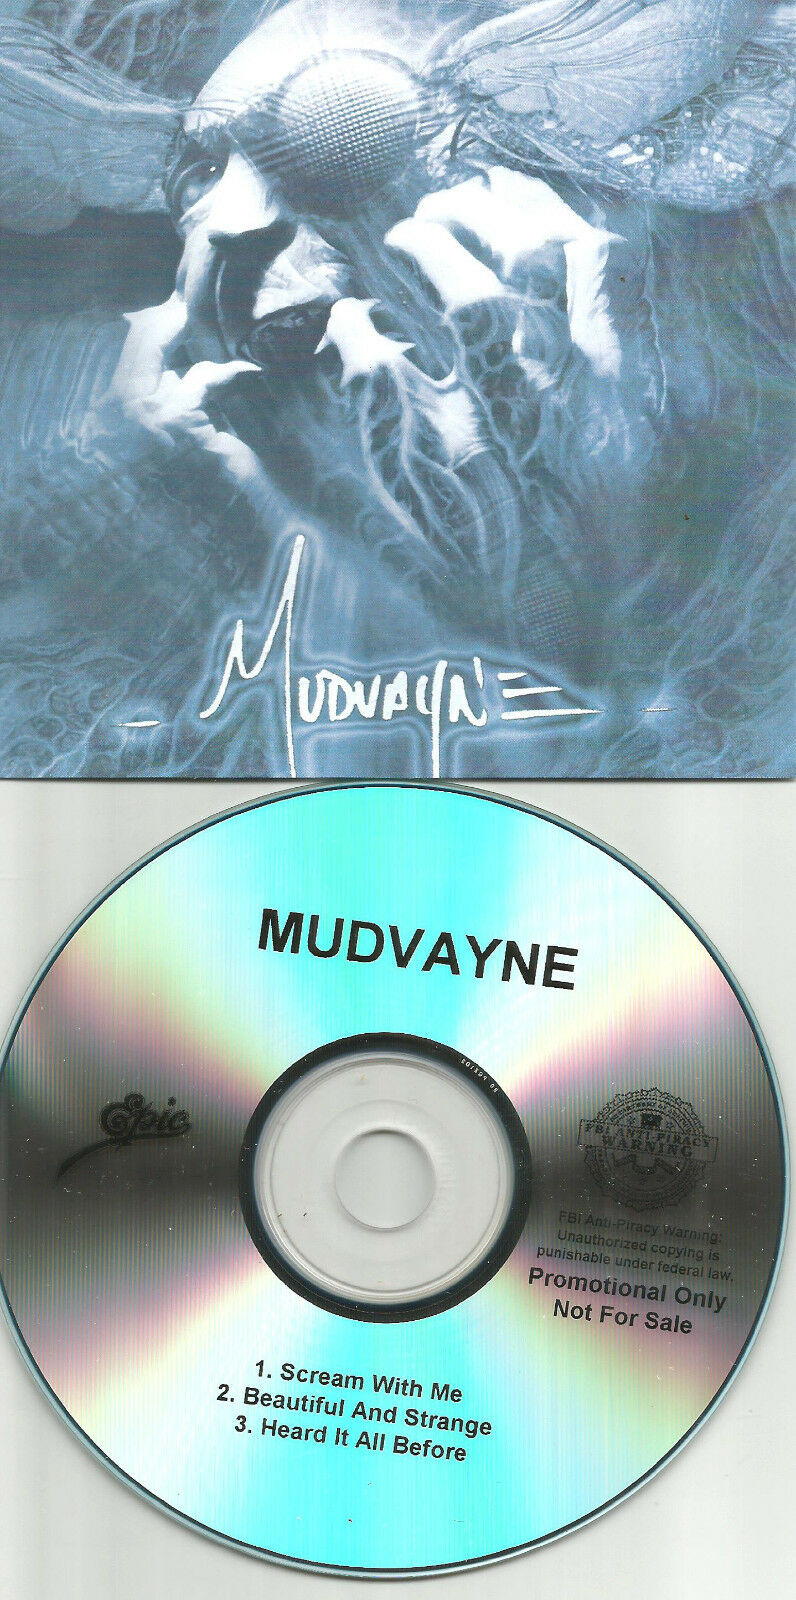 MUDVAYNE Ultra Rare 2009 TST PRESS 3 TRK Sampler PROMO DJ CD single USA MINT